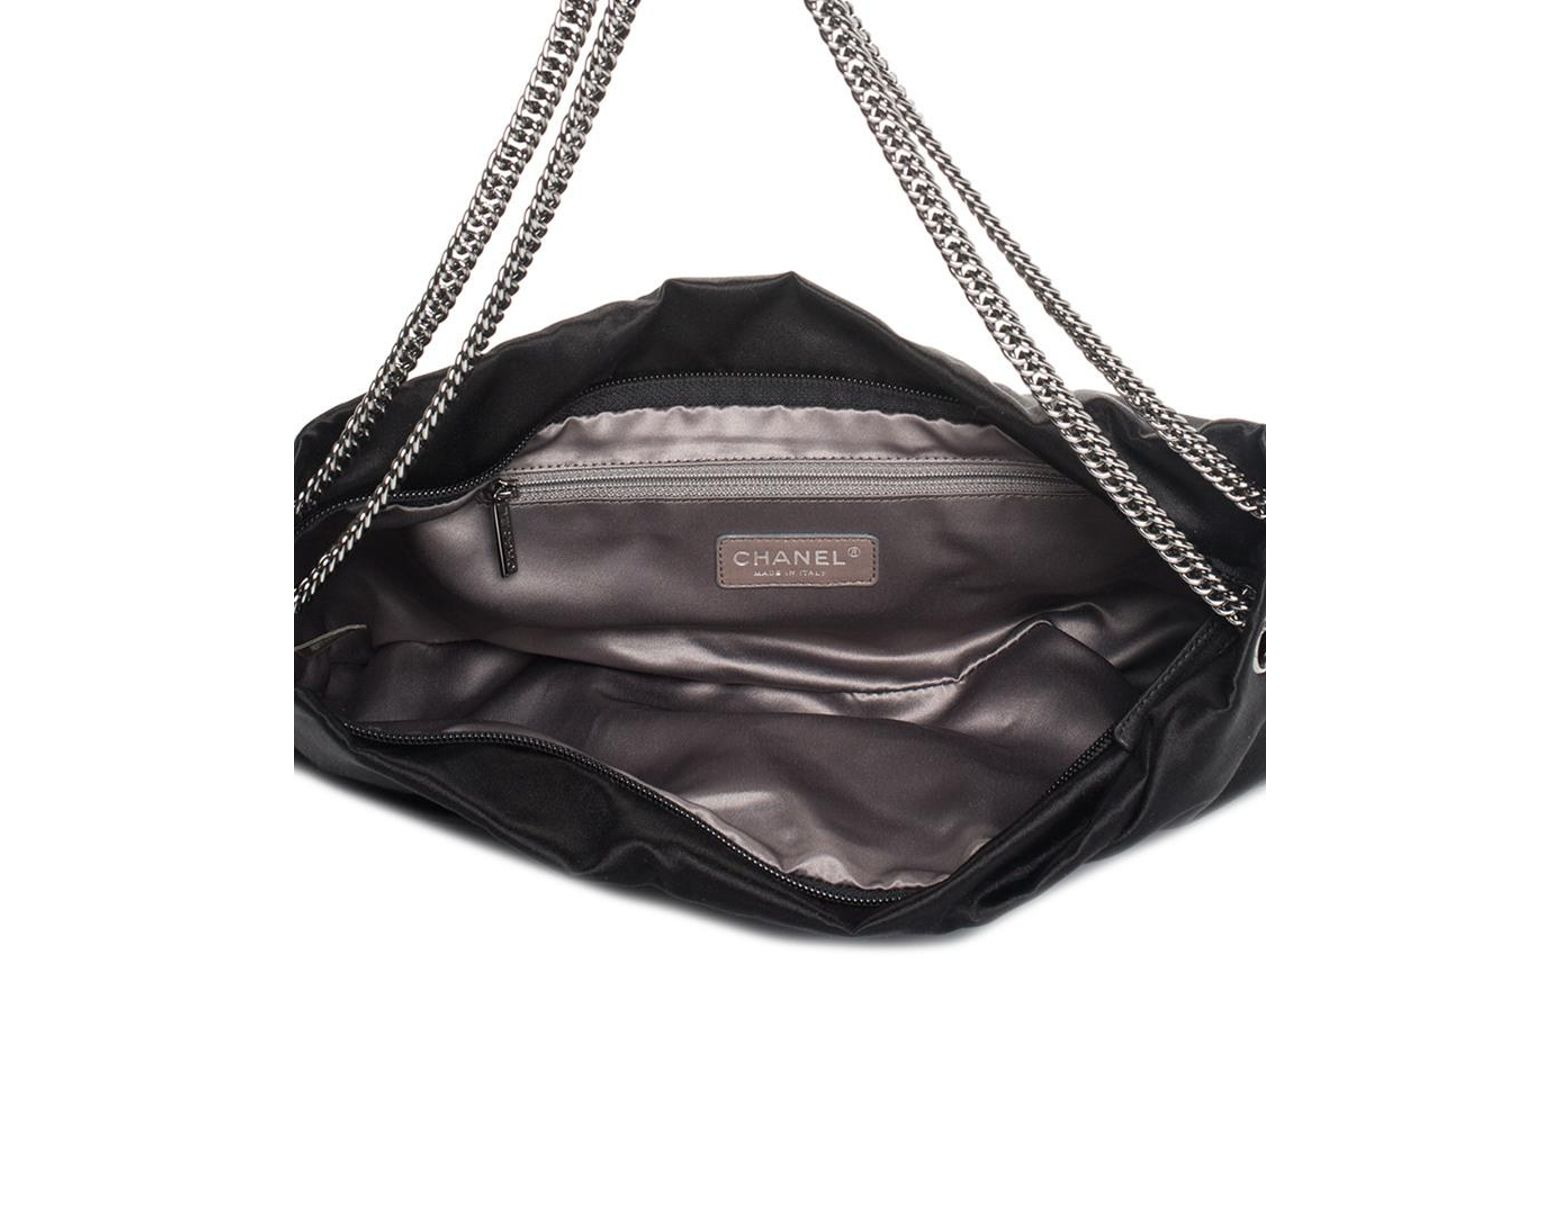 9ddafd2f28 Chanel Limited Edition Black Quilted Satin Runway Xl Maxi Bag, Never  Carried in Black - Save 4% - Lyst